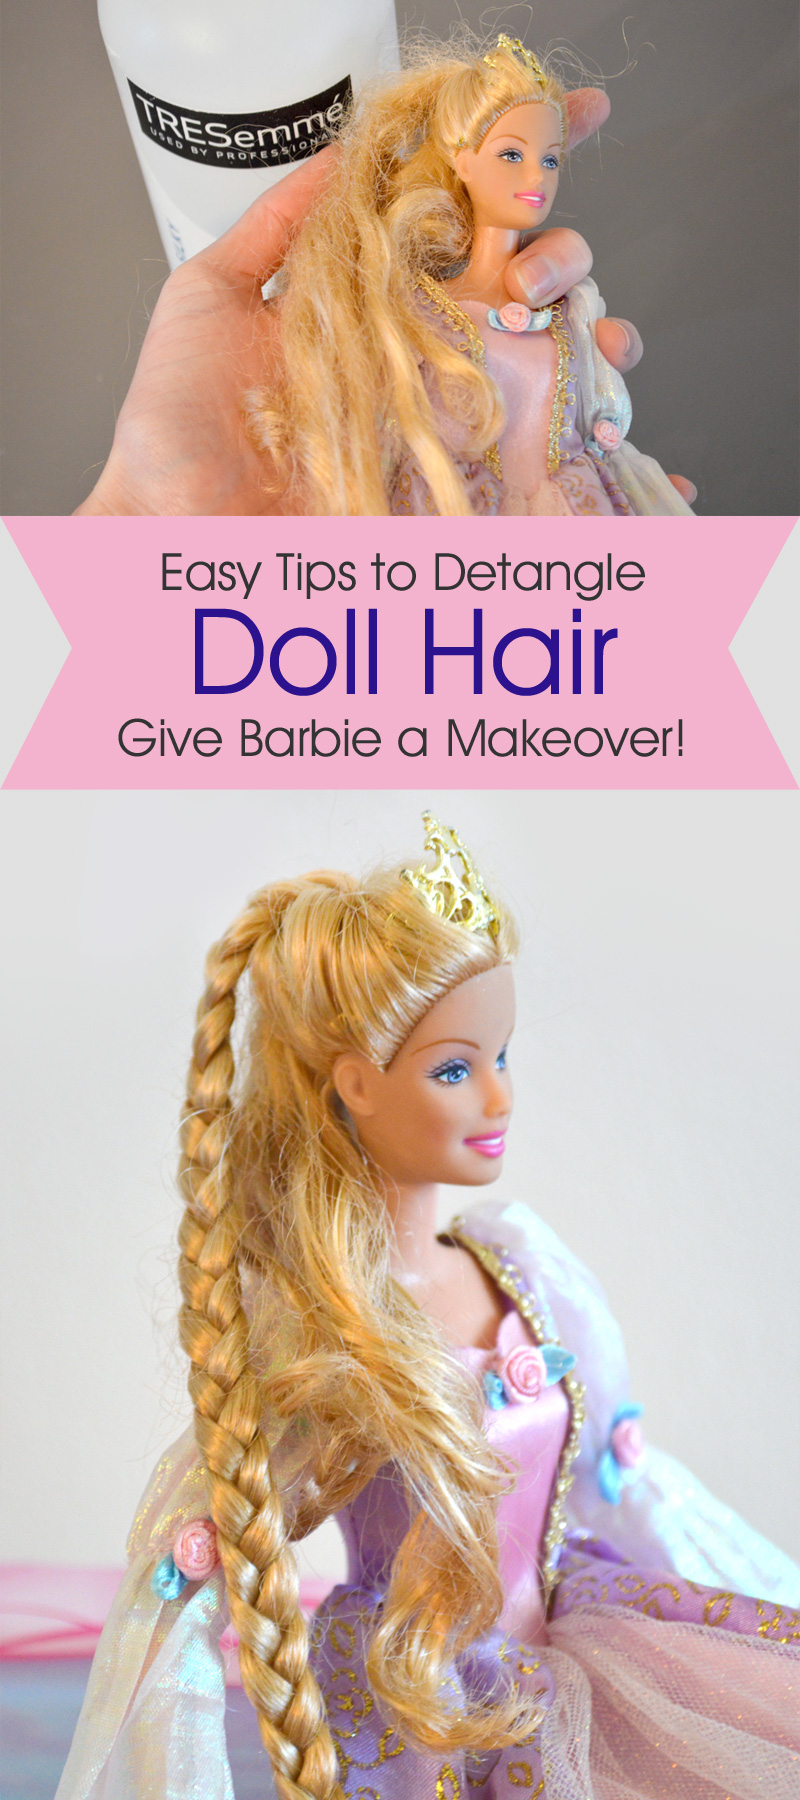 How To Detangle Doll Hair Barbie Makeover Tips Create Play Travel